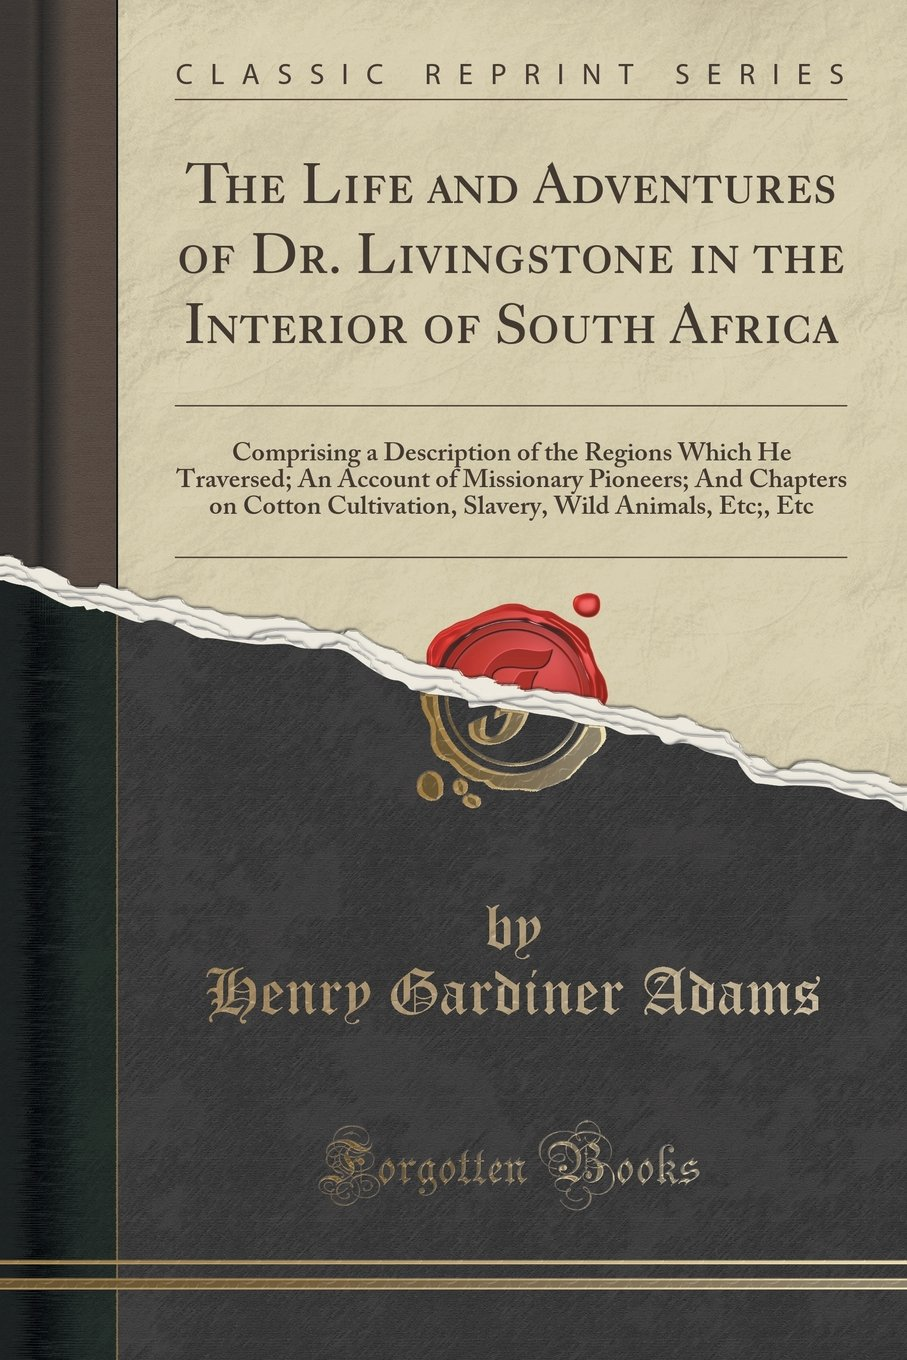 Download The Life and Adventures of Dr. Livingstone in the Interior of South Africa: Comprising a Description of the Regions Which He Traversed; An Account of ... Cultivation, Slavery, Wild Animals, Etc;, Etc ebook